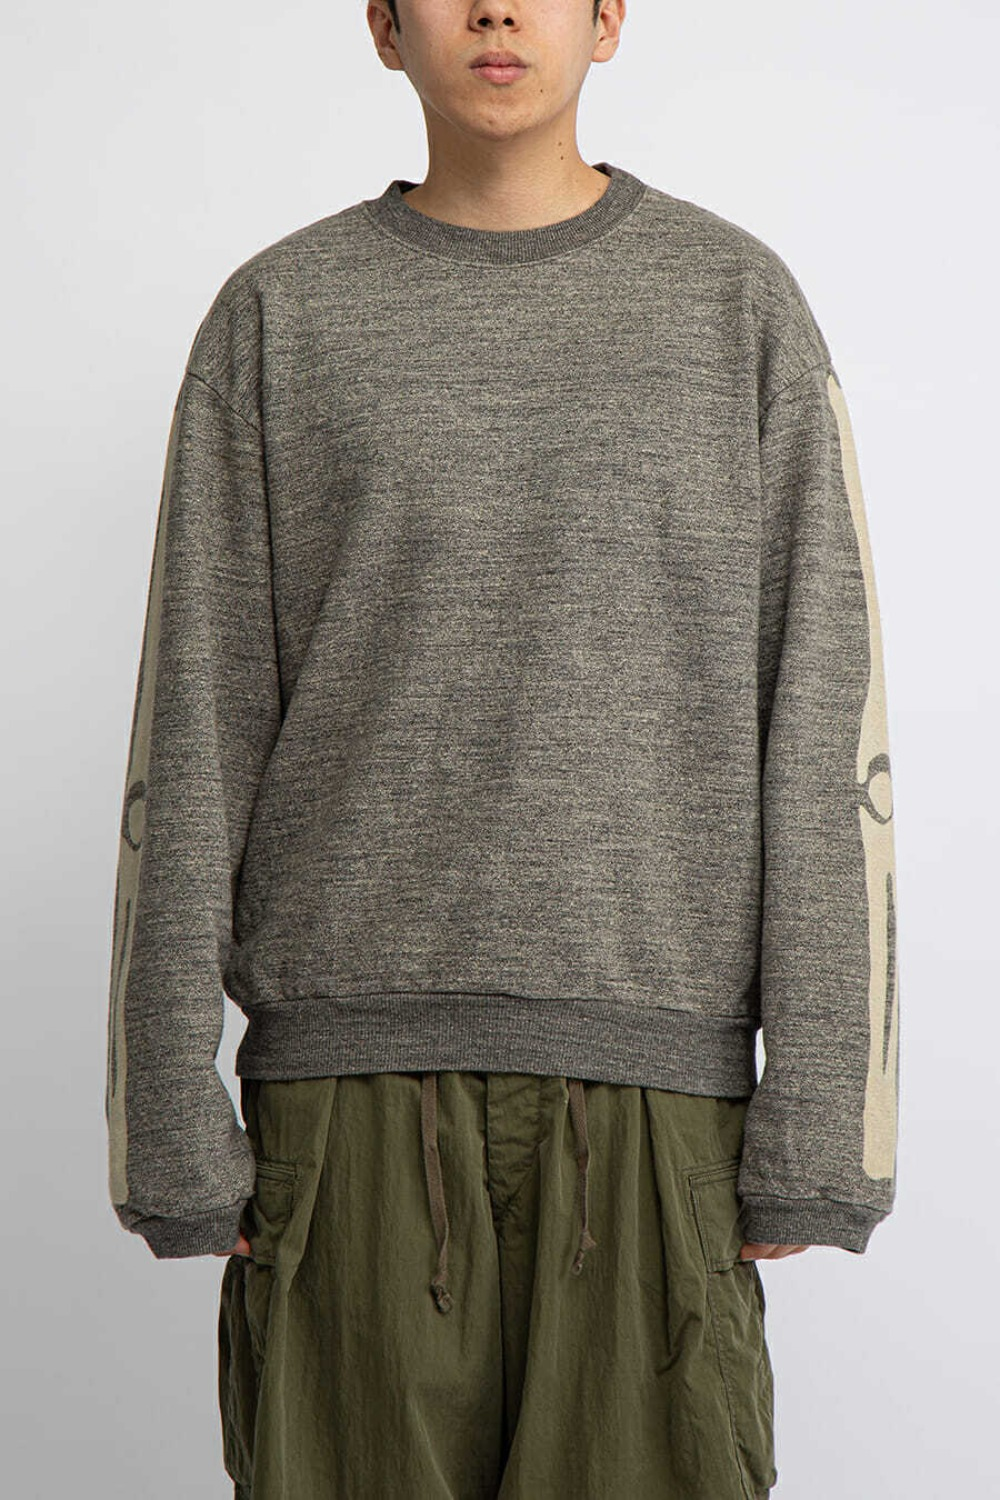 GRANDRELLE FLEECE KNIT BIG CREW SWT(BONE) CHARCOAL